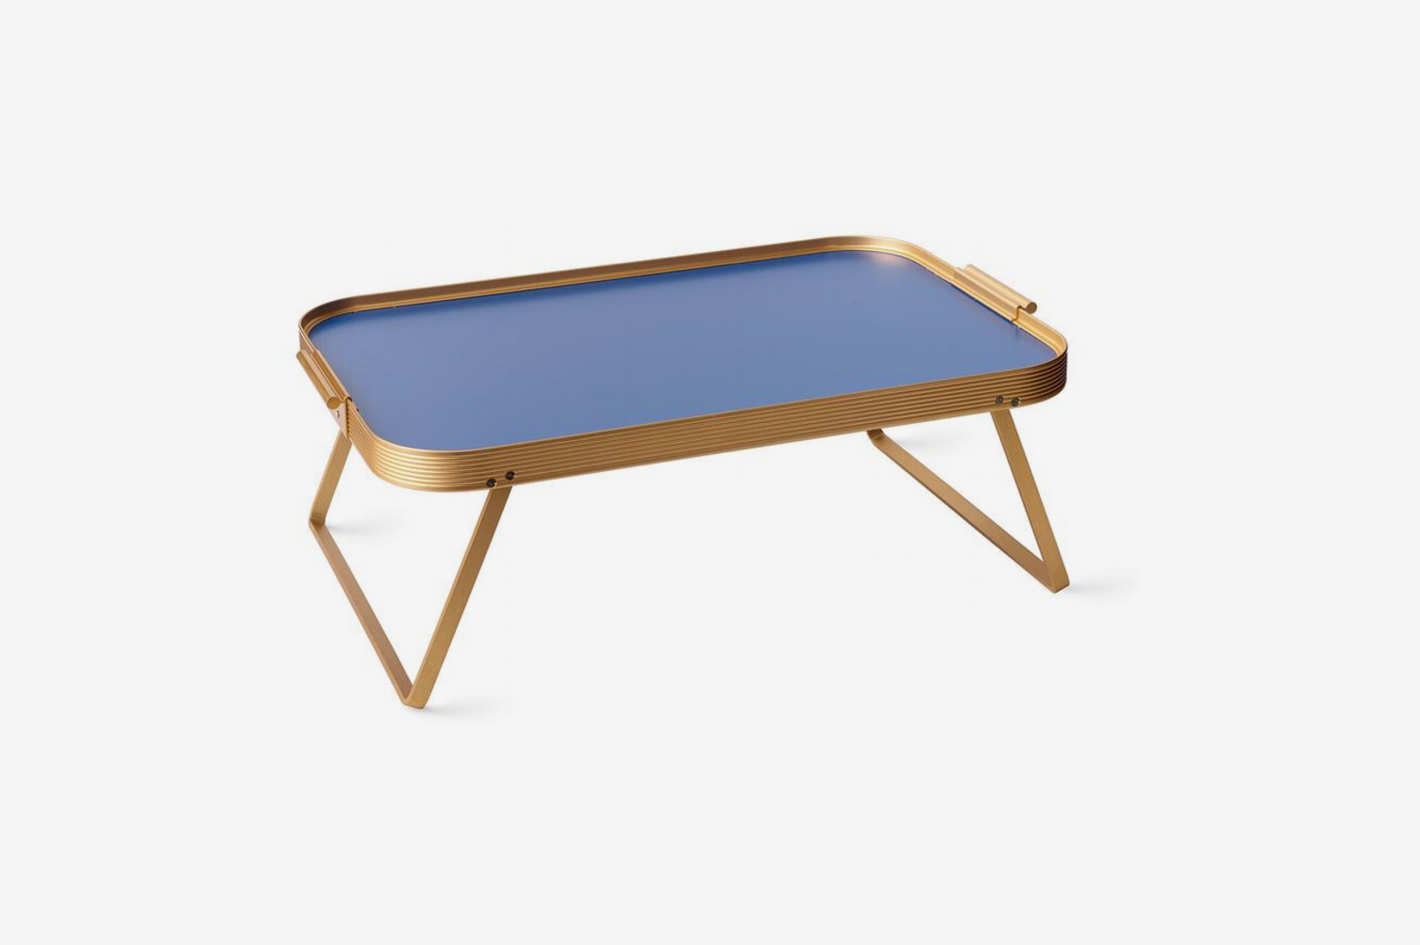 Heath Ceramics Bed Tray in Cobalt